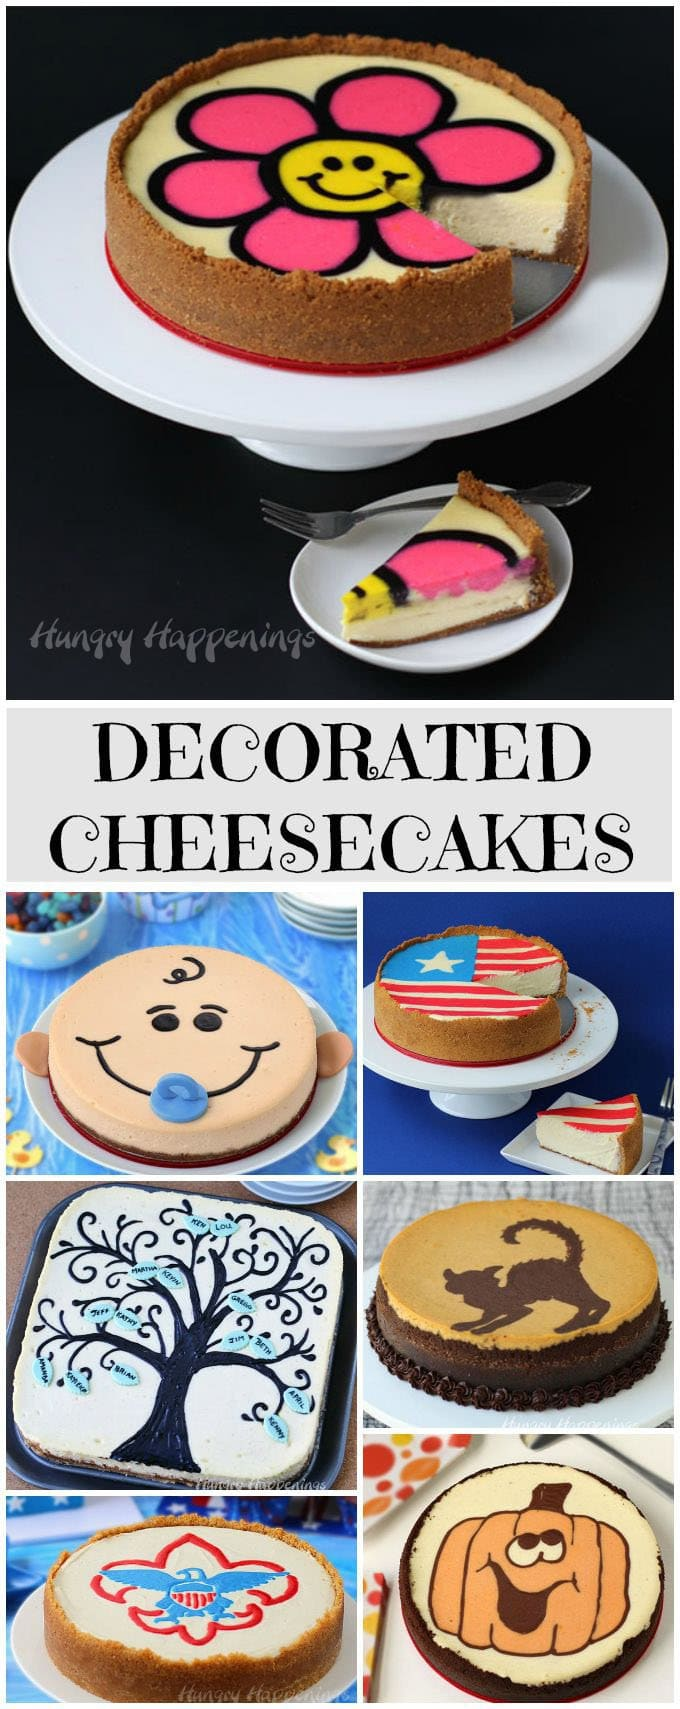 Transform an ordinary cheesecake into a festive dessert for any holiday or special occasion. Tutorials at Hungry Happenings.